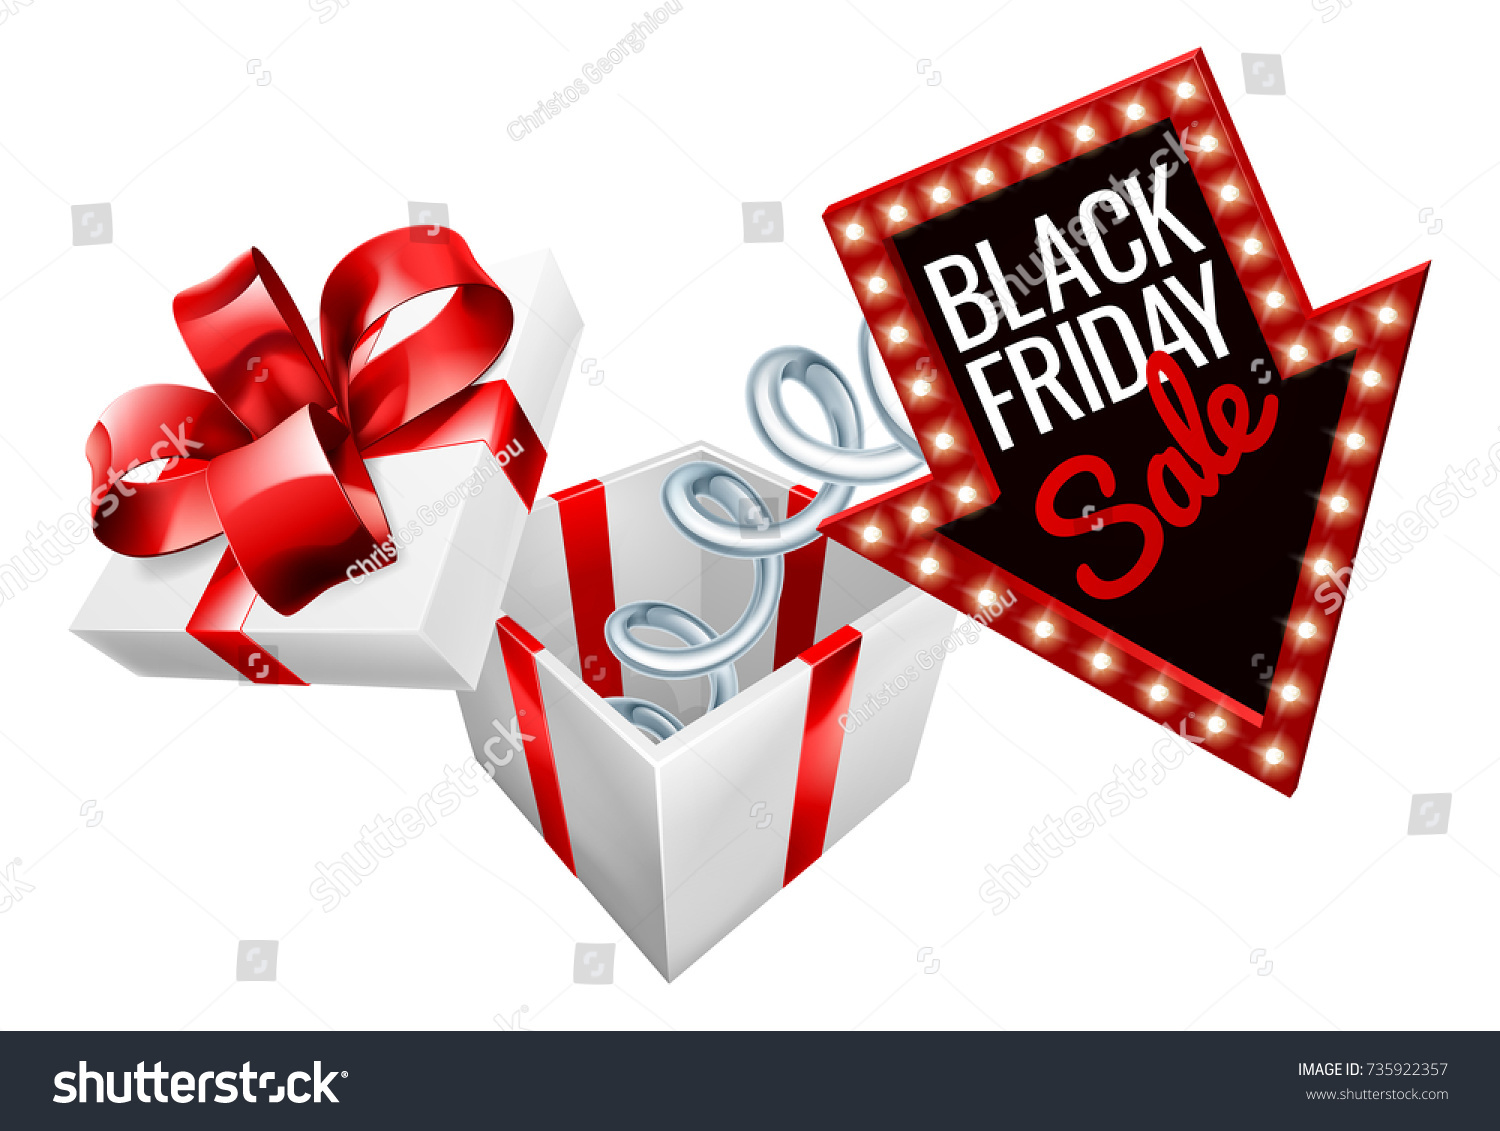 Jack Box Black Friday Sale Sign Stock Vector 735922357 - Shutterstock